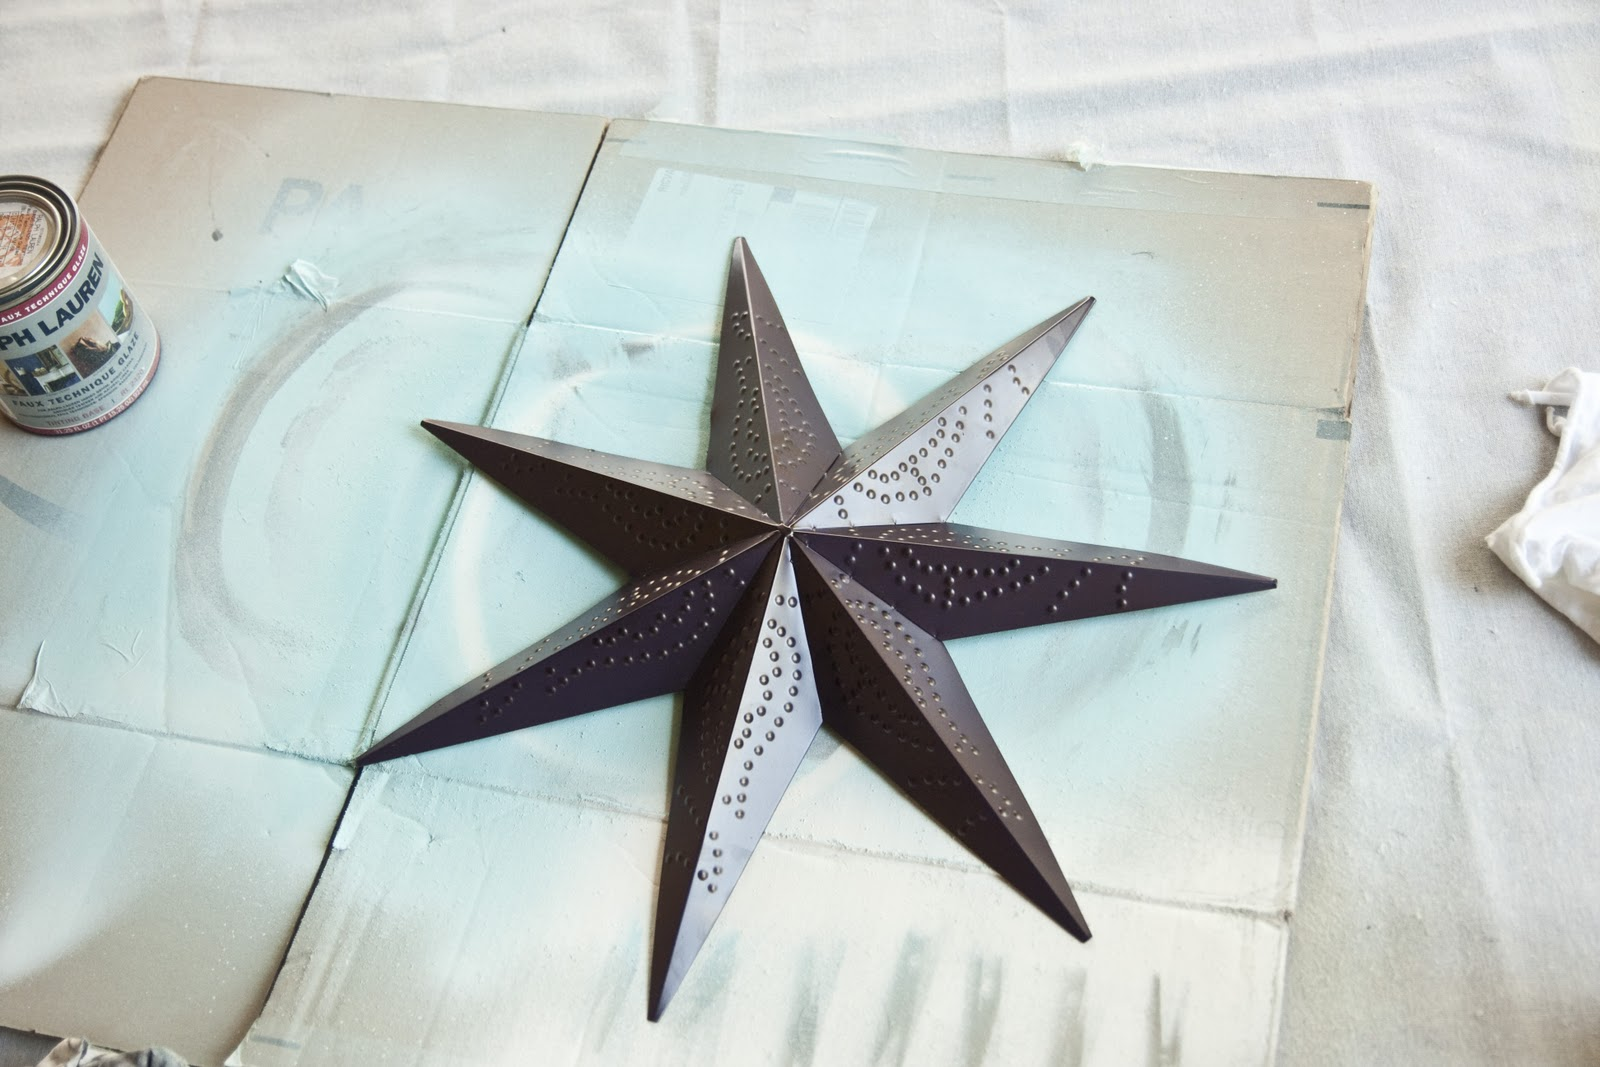 After I got home, I laid out the star on my work surface (cardboard box on a canvas sheet).